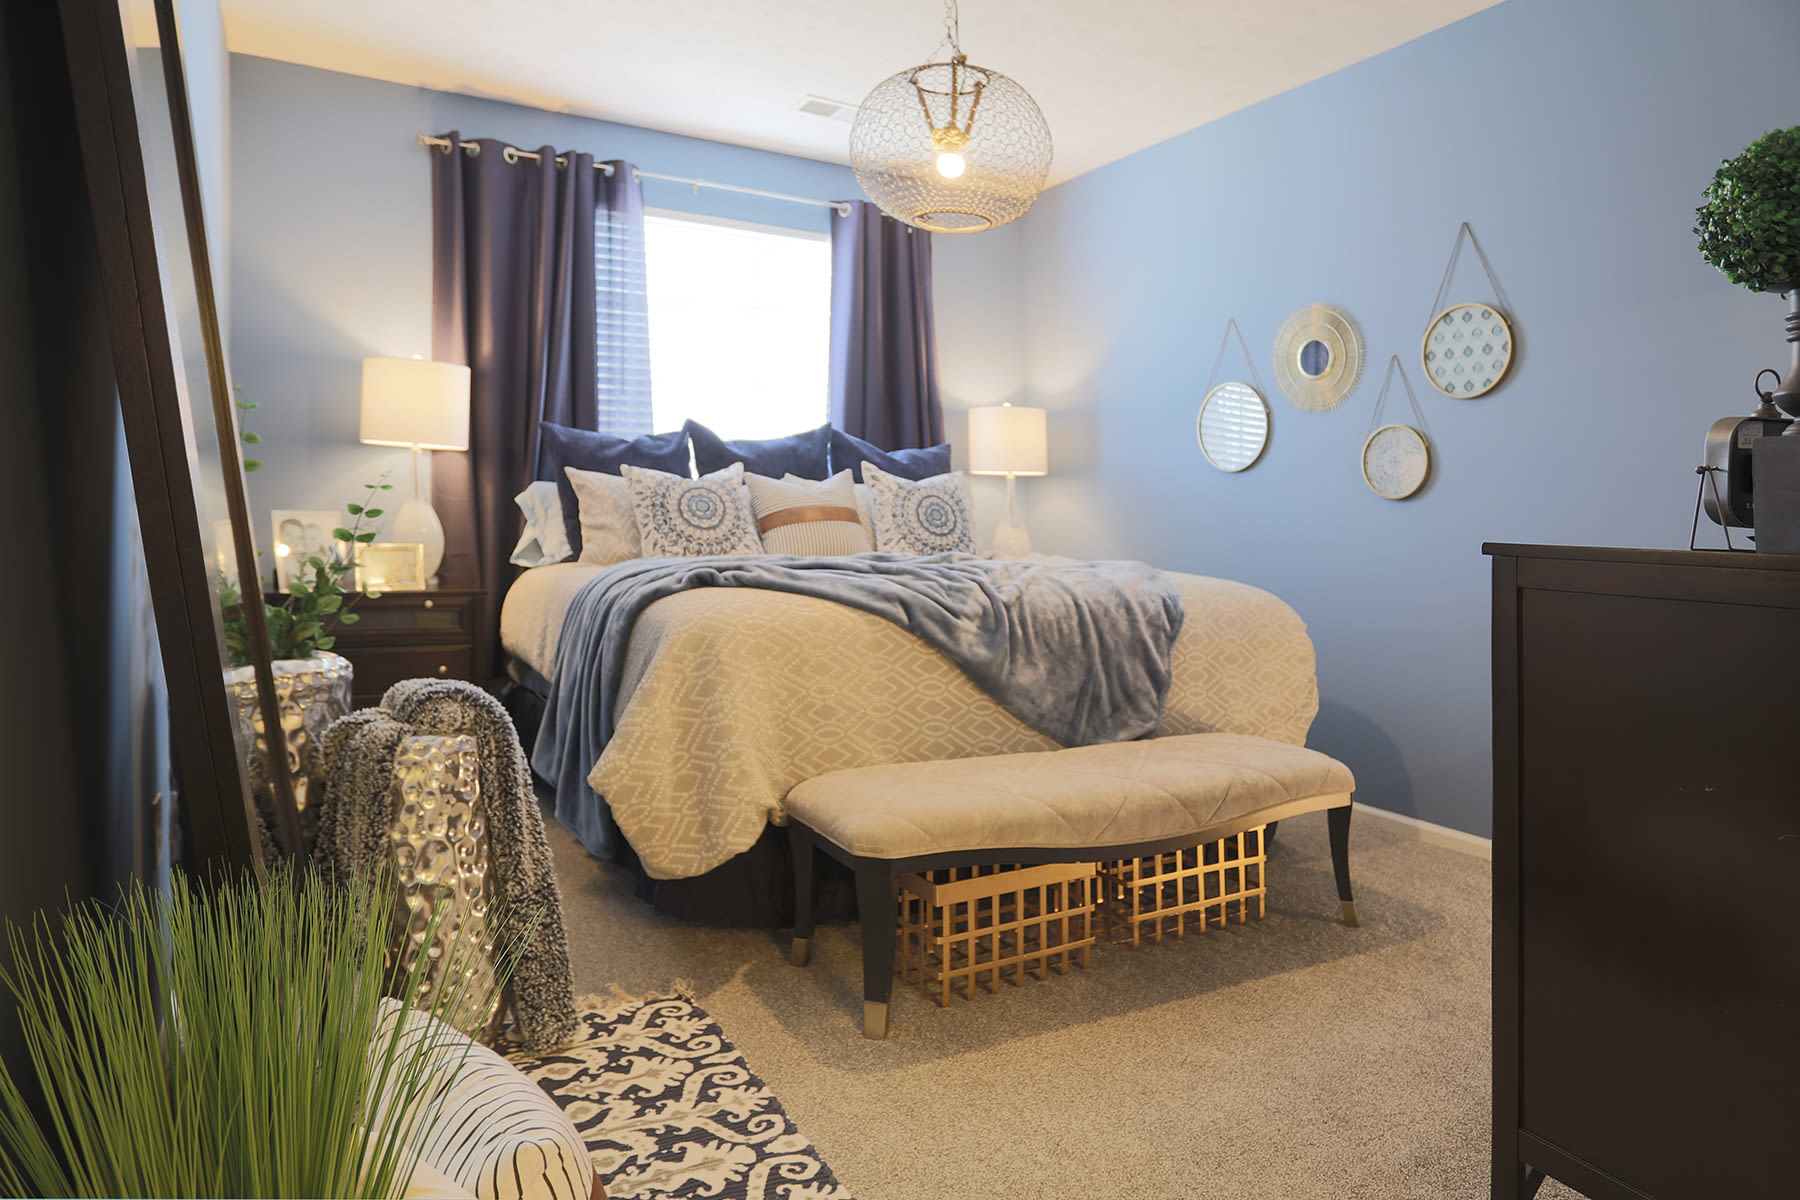 View The Reserve at Miller Farm floor plans